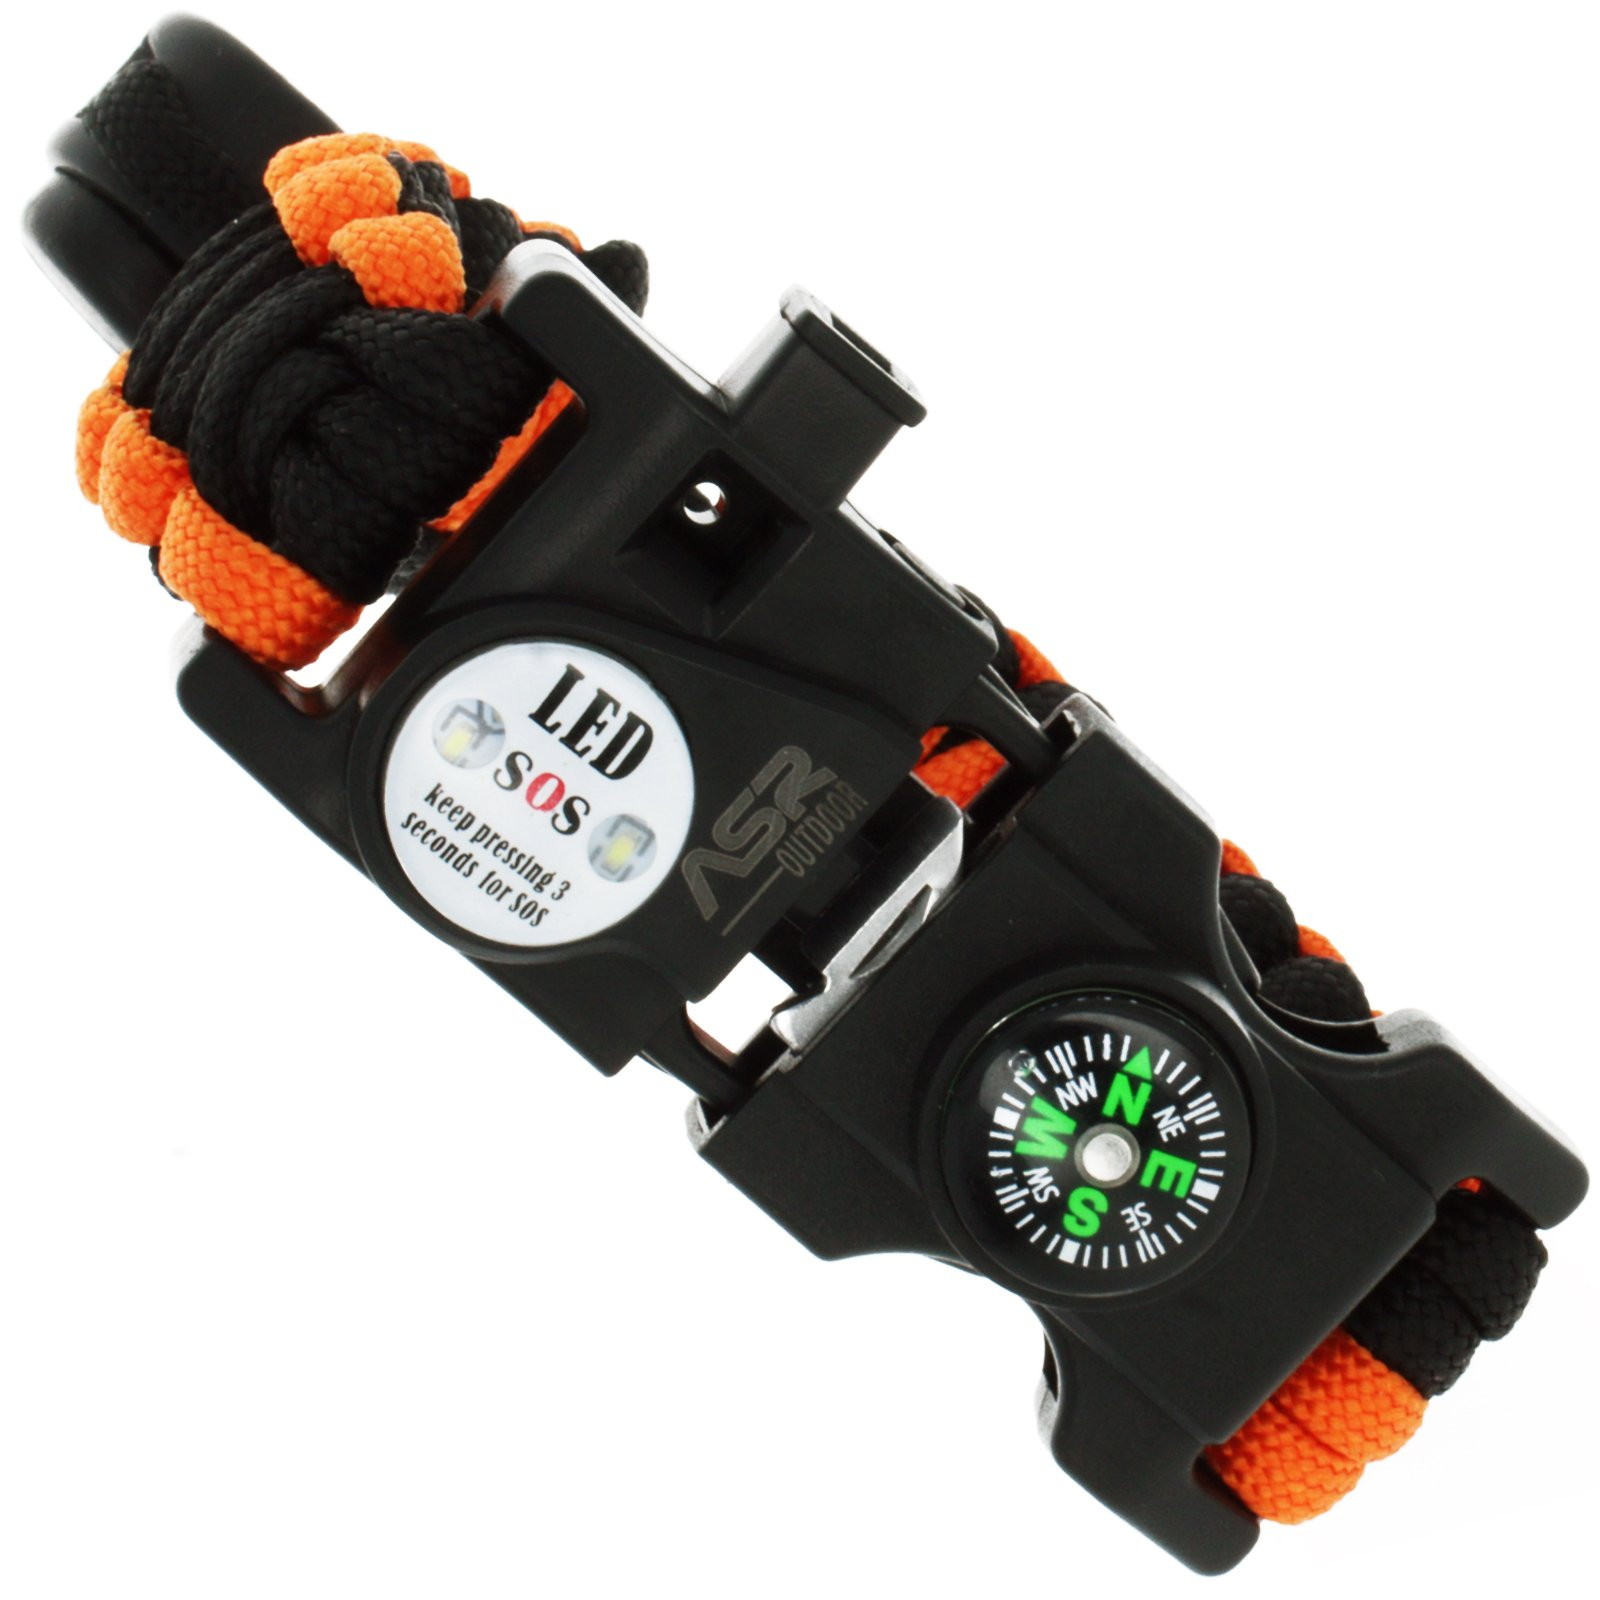 ASR Outdoor- Multitool Paracord Survival Bracelet - Orange and Black